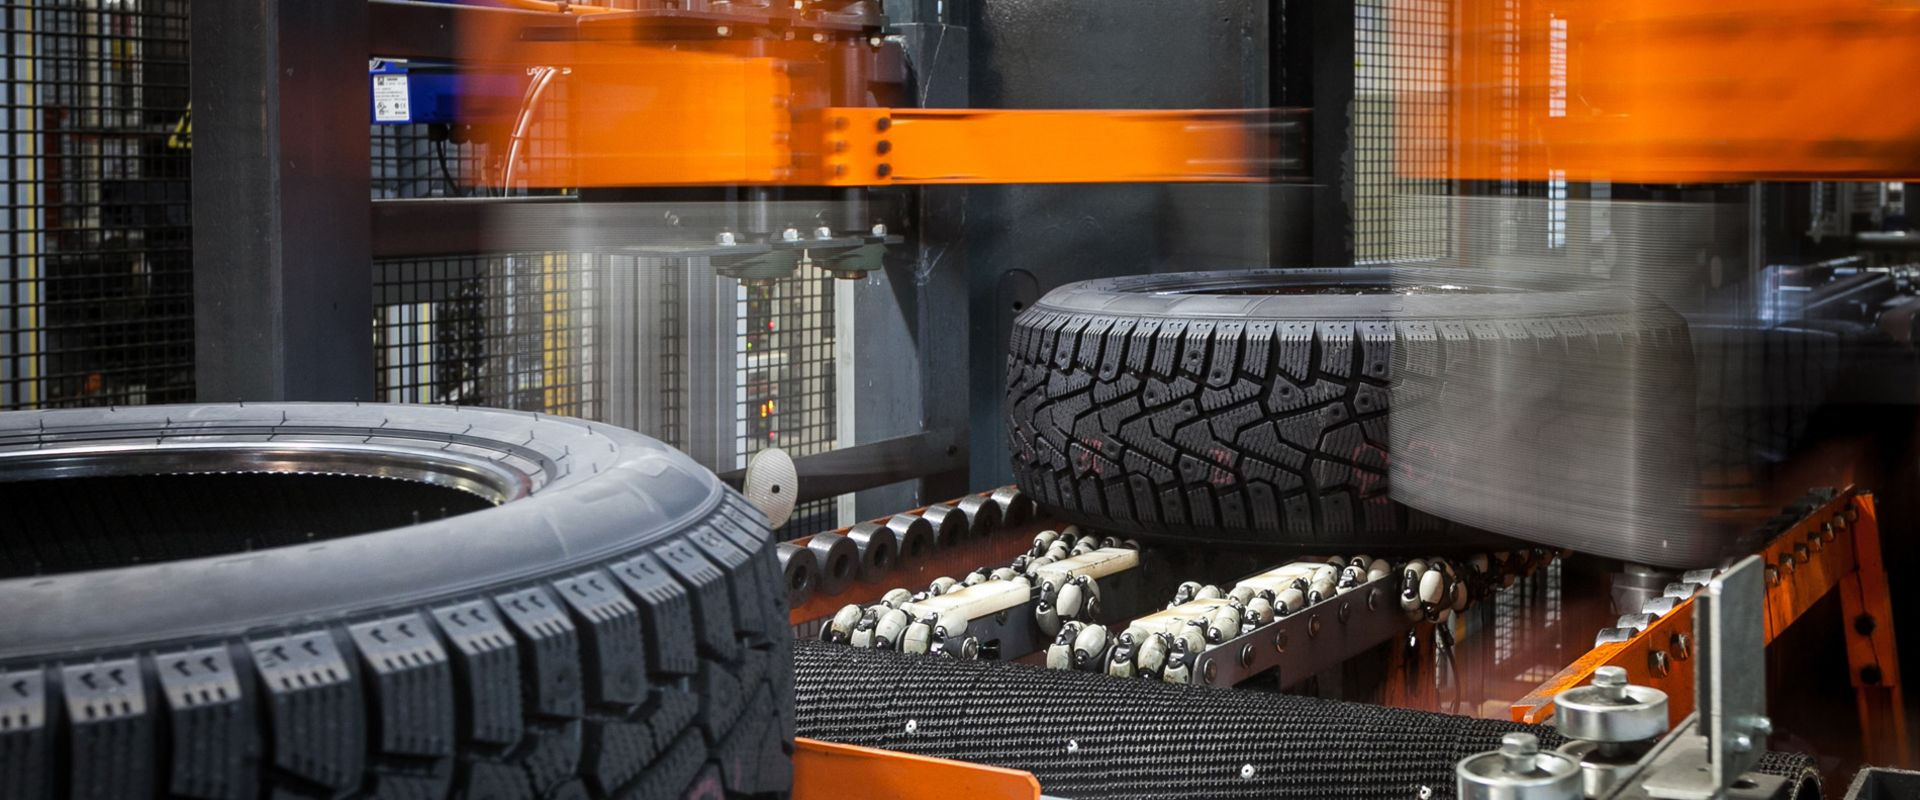 Industrial IoT: Tire production